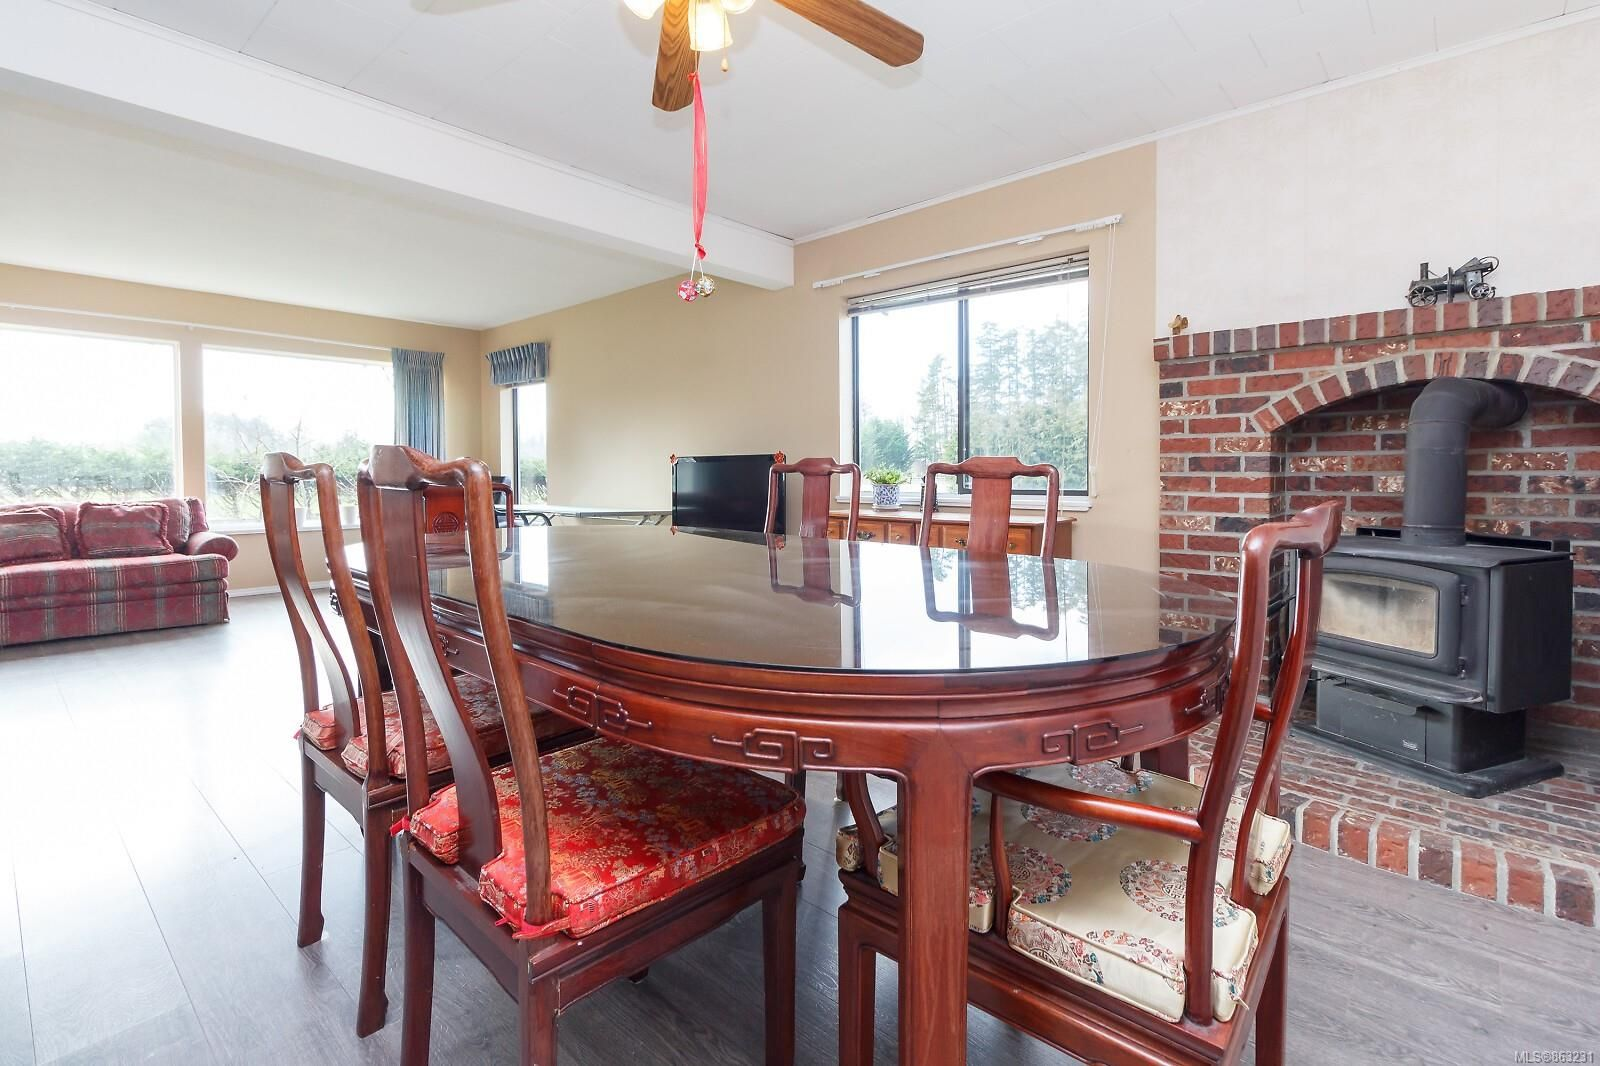 Photo 23: Photos: 1230 Hodges Rd in : PQ French Creek House for sale (Parksville/Qualicum)  : MLS®# 863231